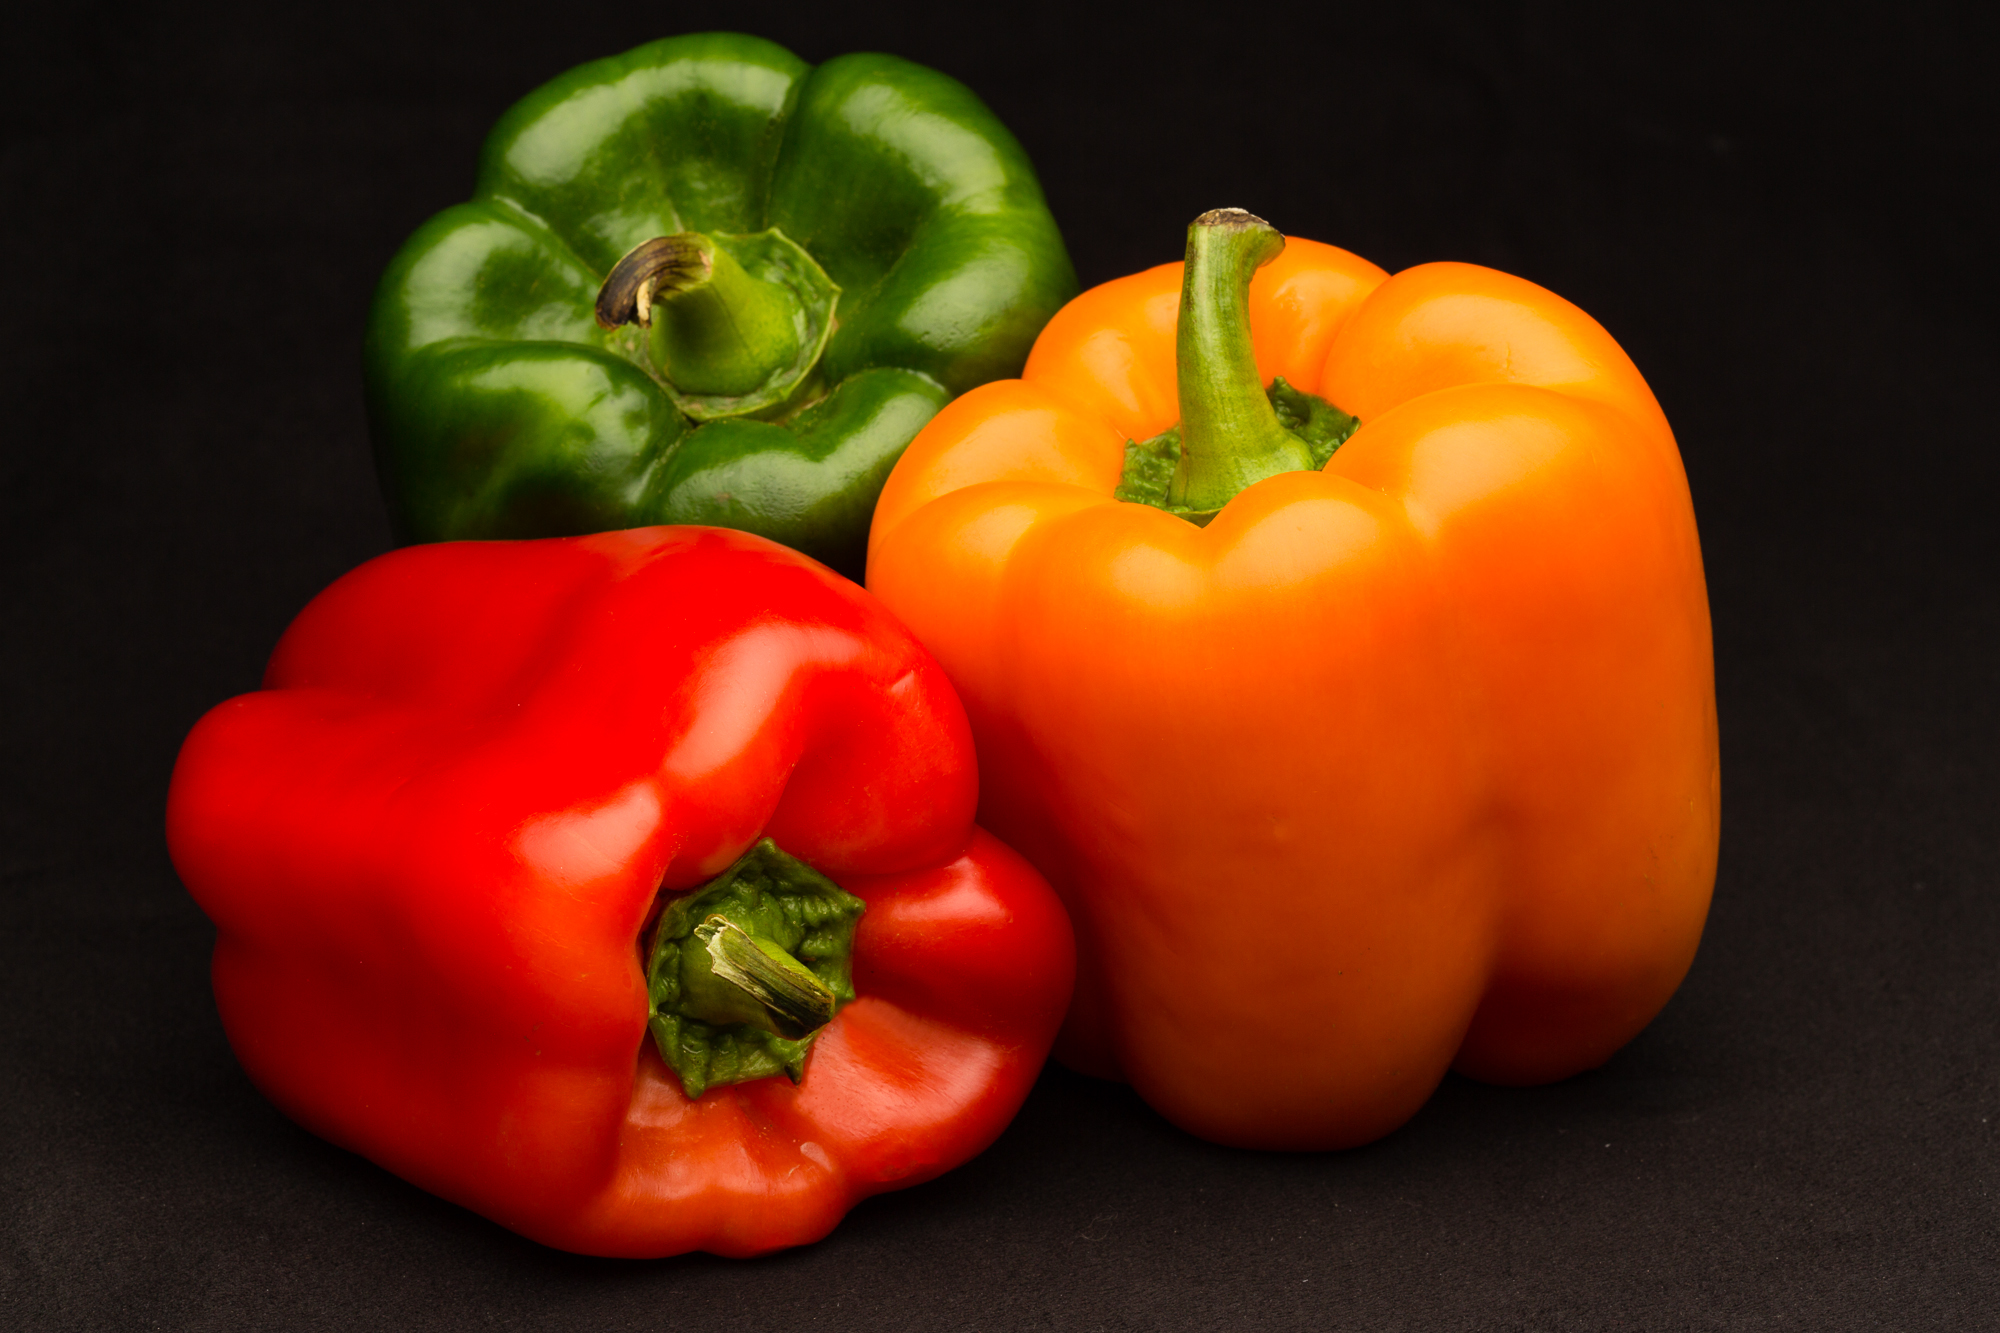 Professional food photo of red, green and orange bell peppers. Commercial photography